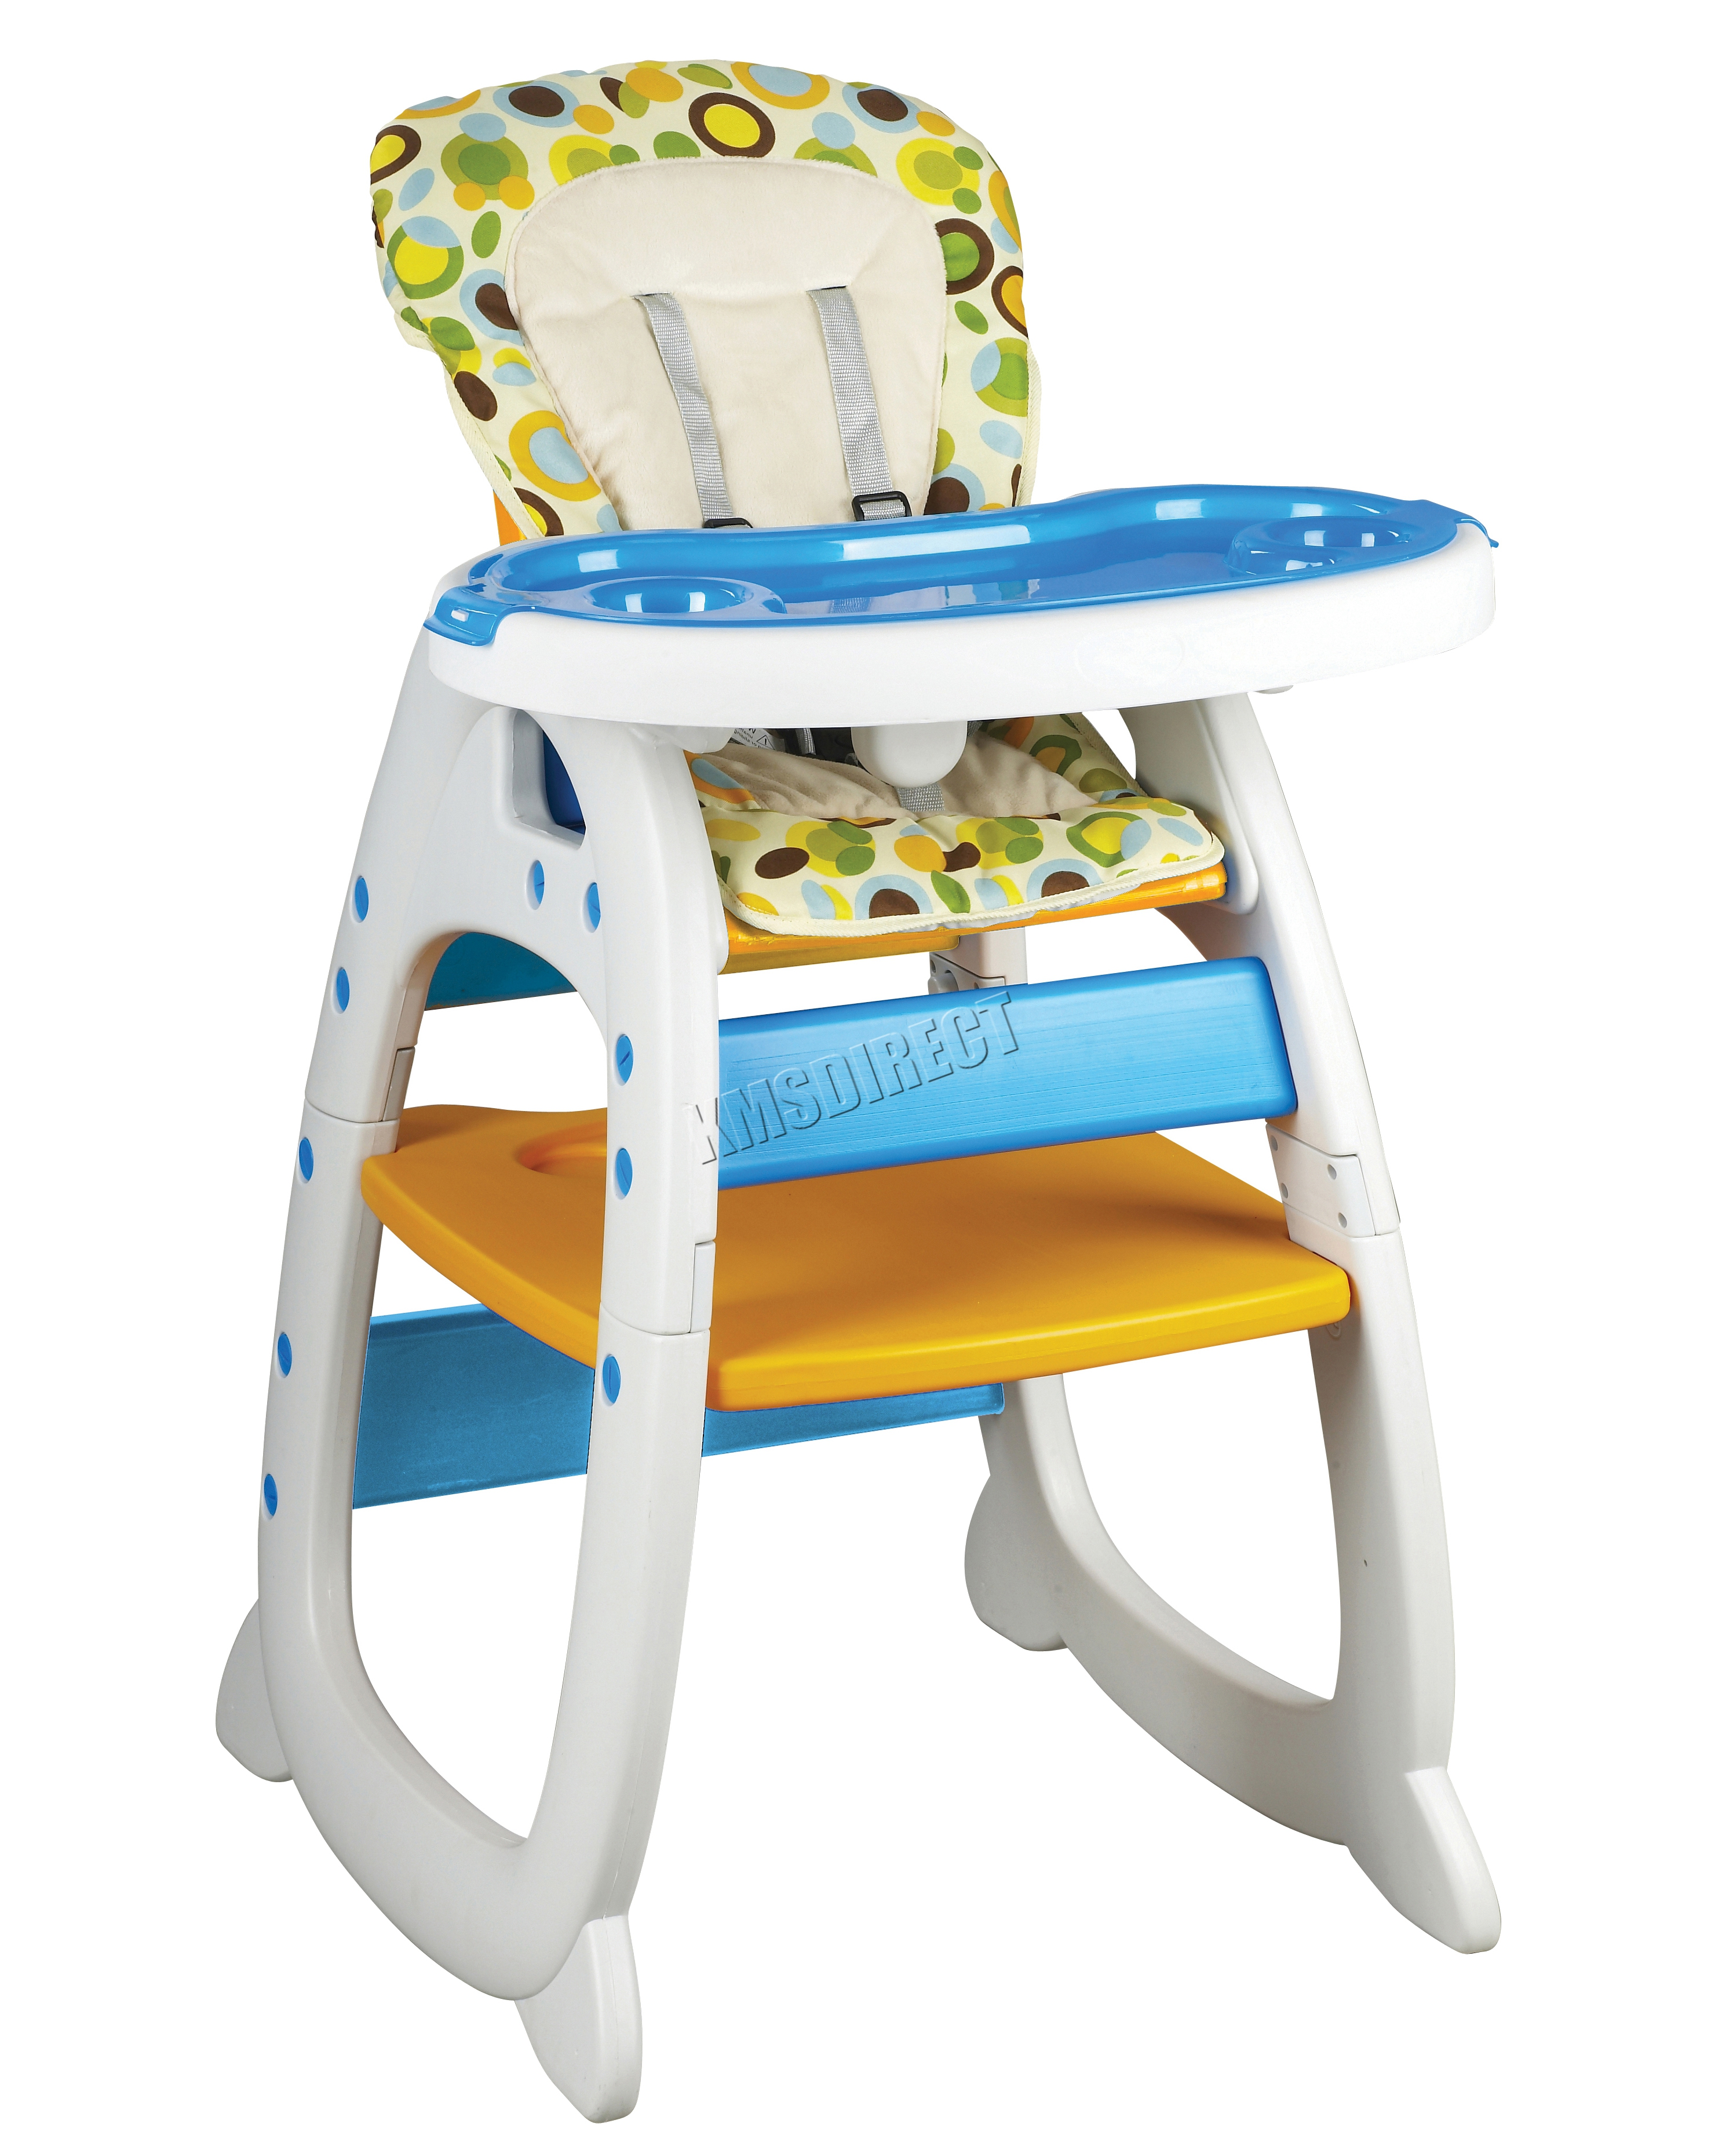 wooden baby high chairs uk large bean bags foxhunter highchair infant feeding seat 3in1